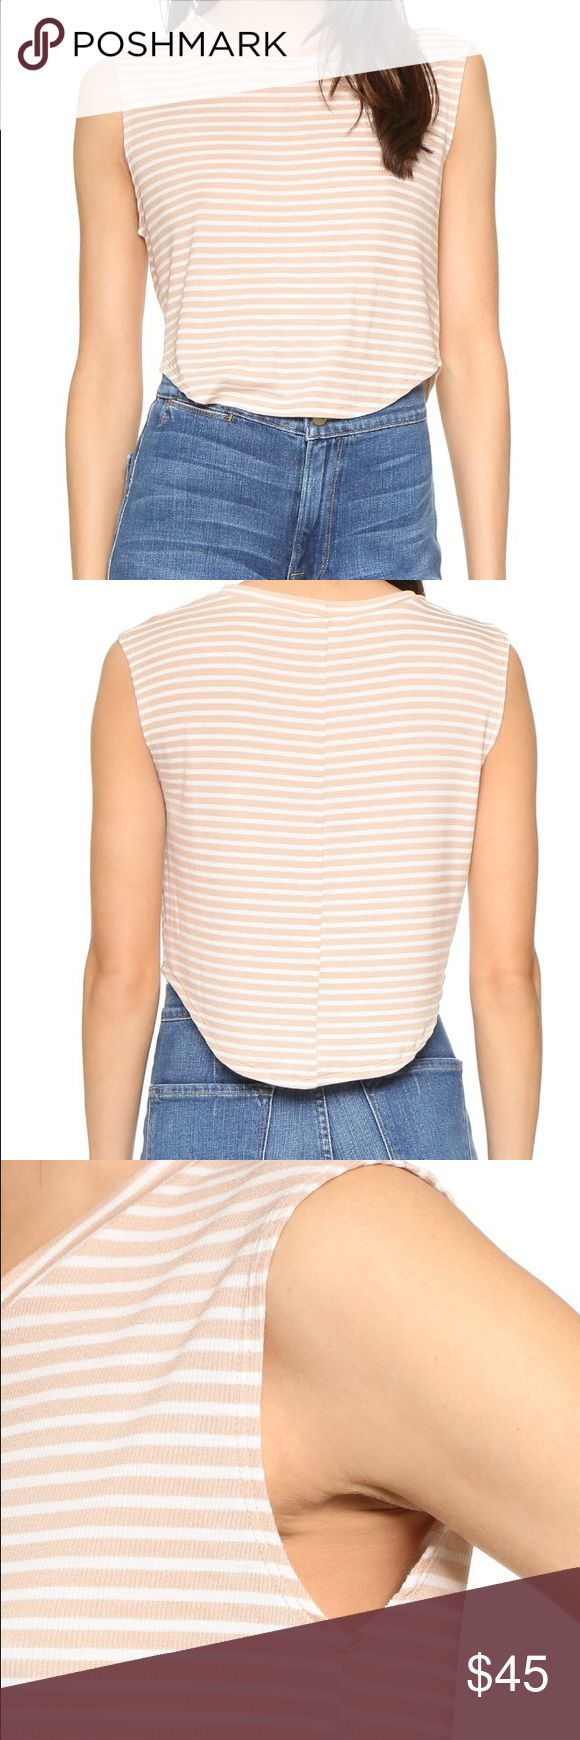 Planet Blue LNA Ribbed Atlanta Crop Top Slim horizontal stripes add a graphic touch to this ribbed LNA crop top. Banded neckline. Curved hem. Sleeveless. Planet Blue Tops Crop Tops